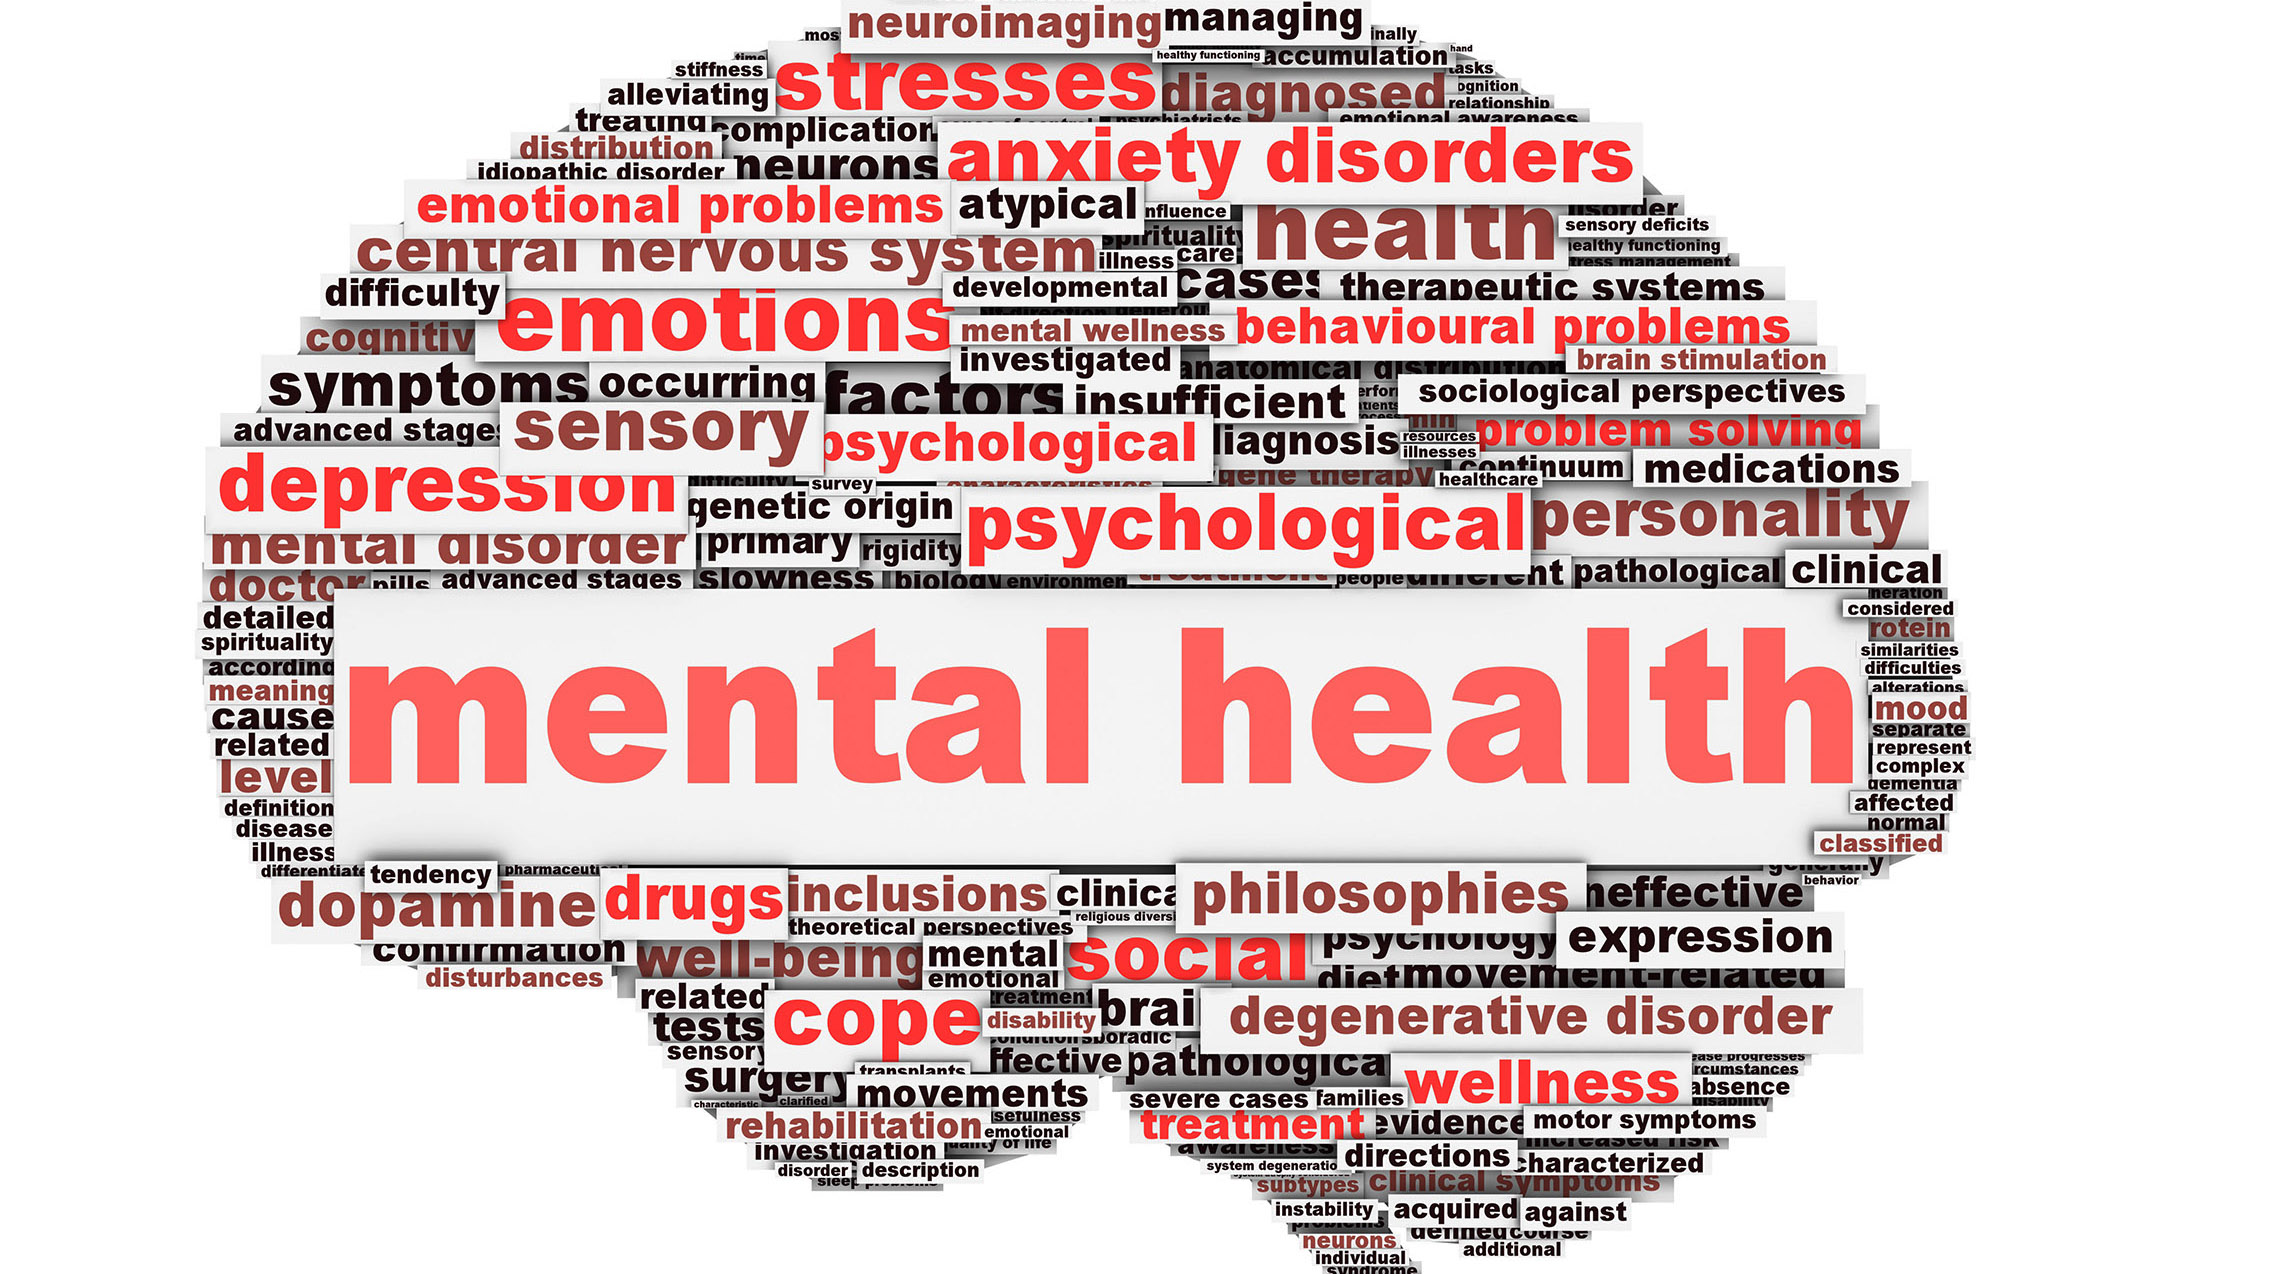 mental health dating agency uk Mental health includes our emotional, psychological, and social well-being it affects how we think, feel, and act it also helps determine how we handle stress, relate to others, and make choices.